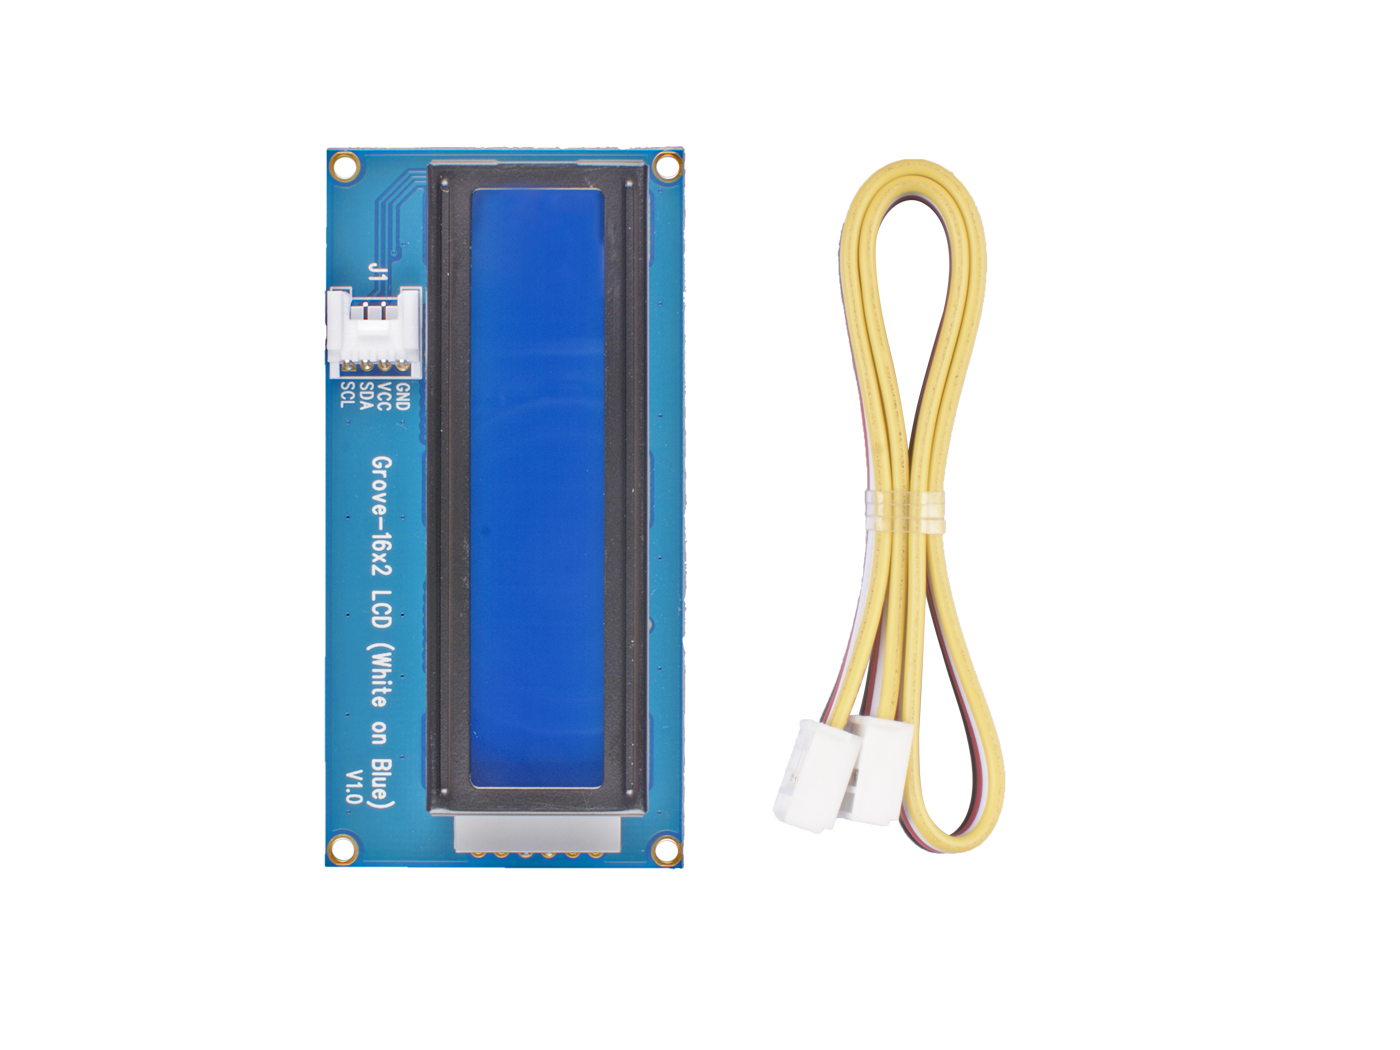 Grove - 16 x 2 LCD (White on Blue)